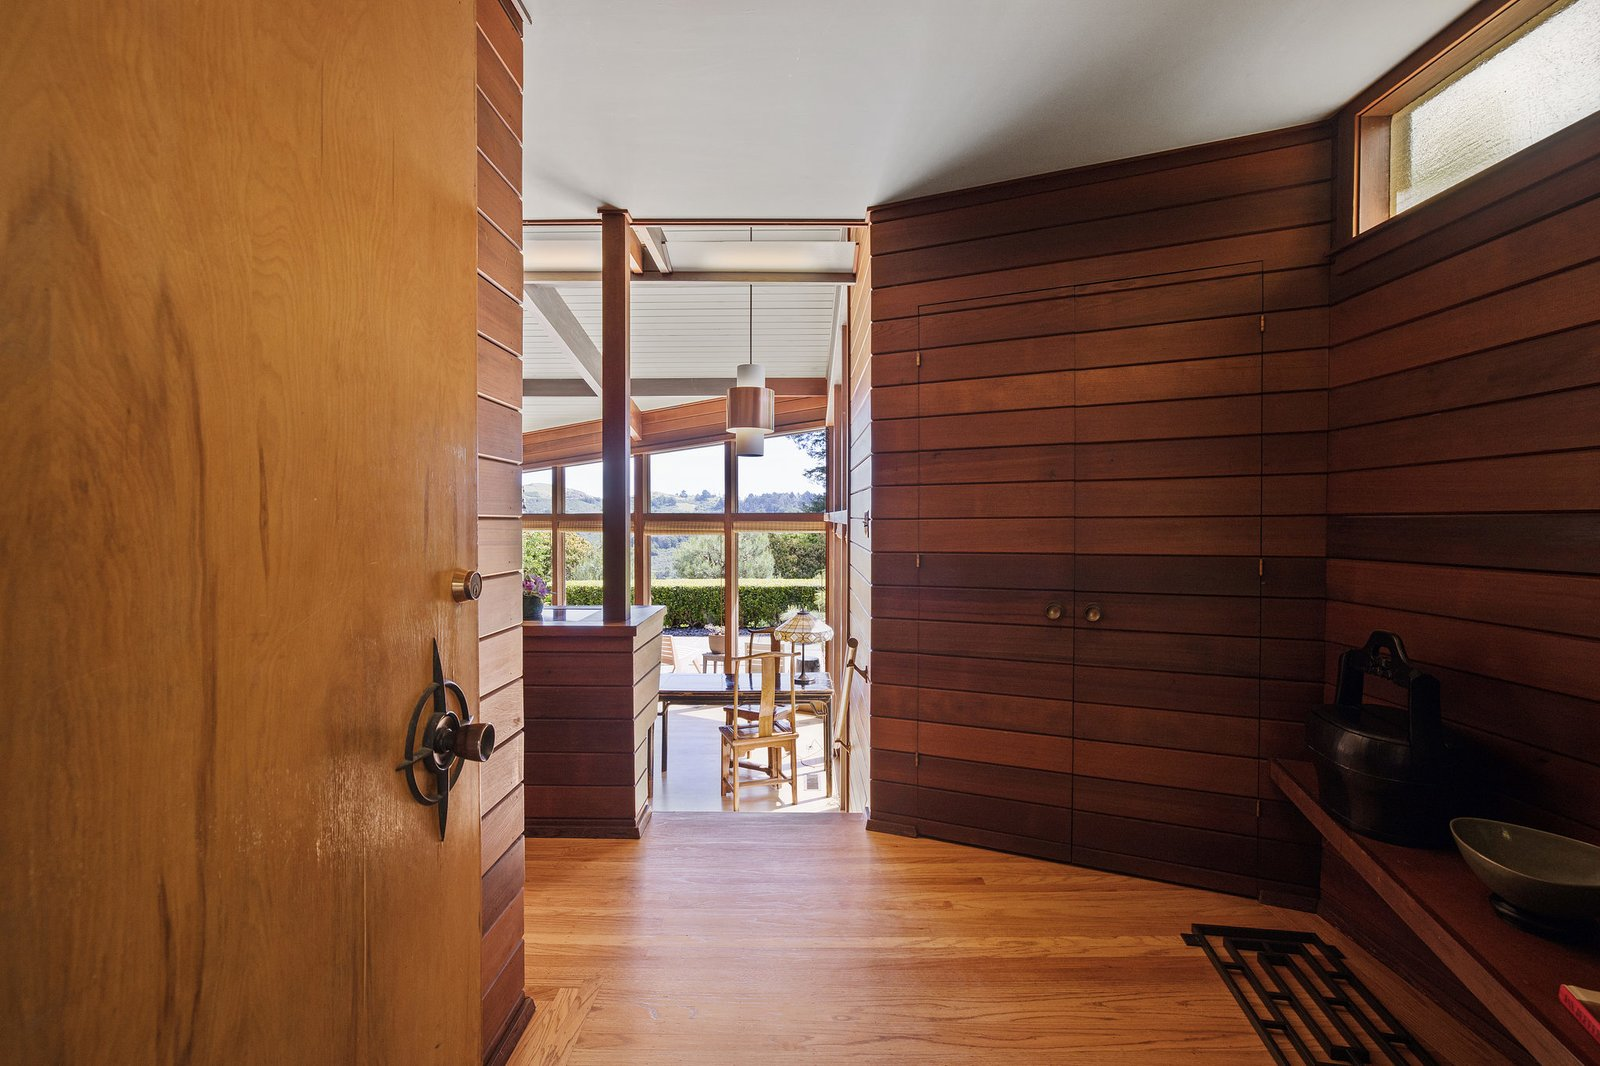 Dark wood clads the walls of the entranceway, which leads to a bright, spacious living room.  Photo 2 of 21 in An Impeccable Midcentury Compound in the Berkeley Hills Wants $3.4M